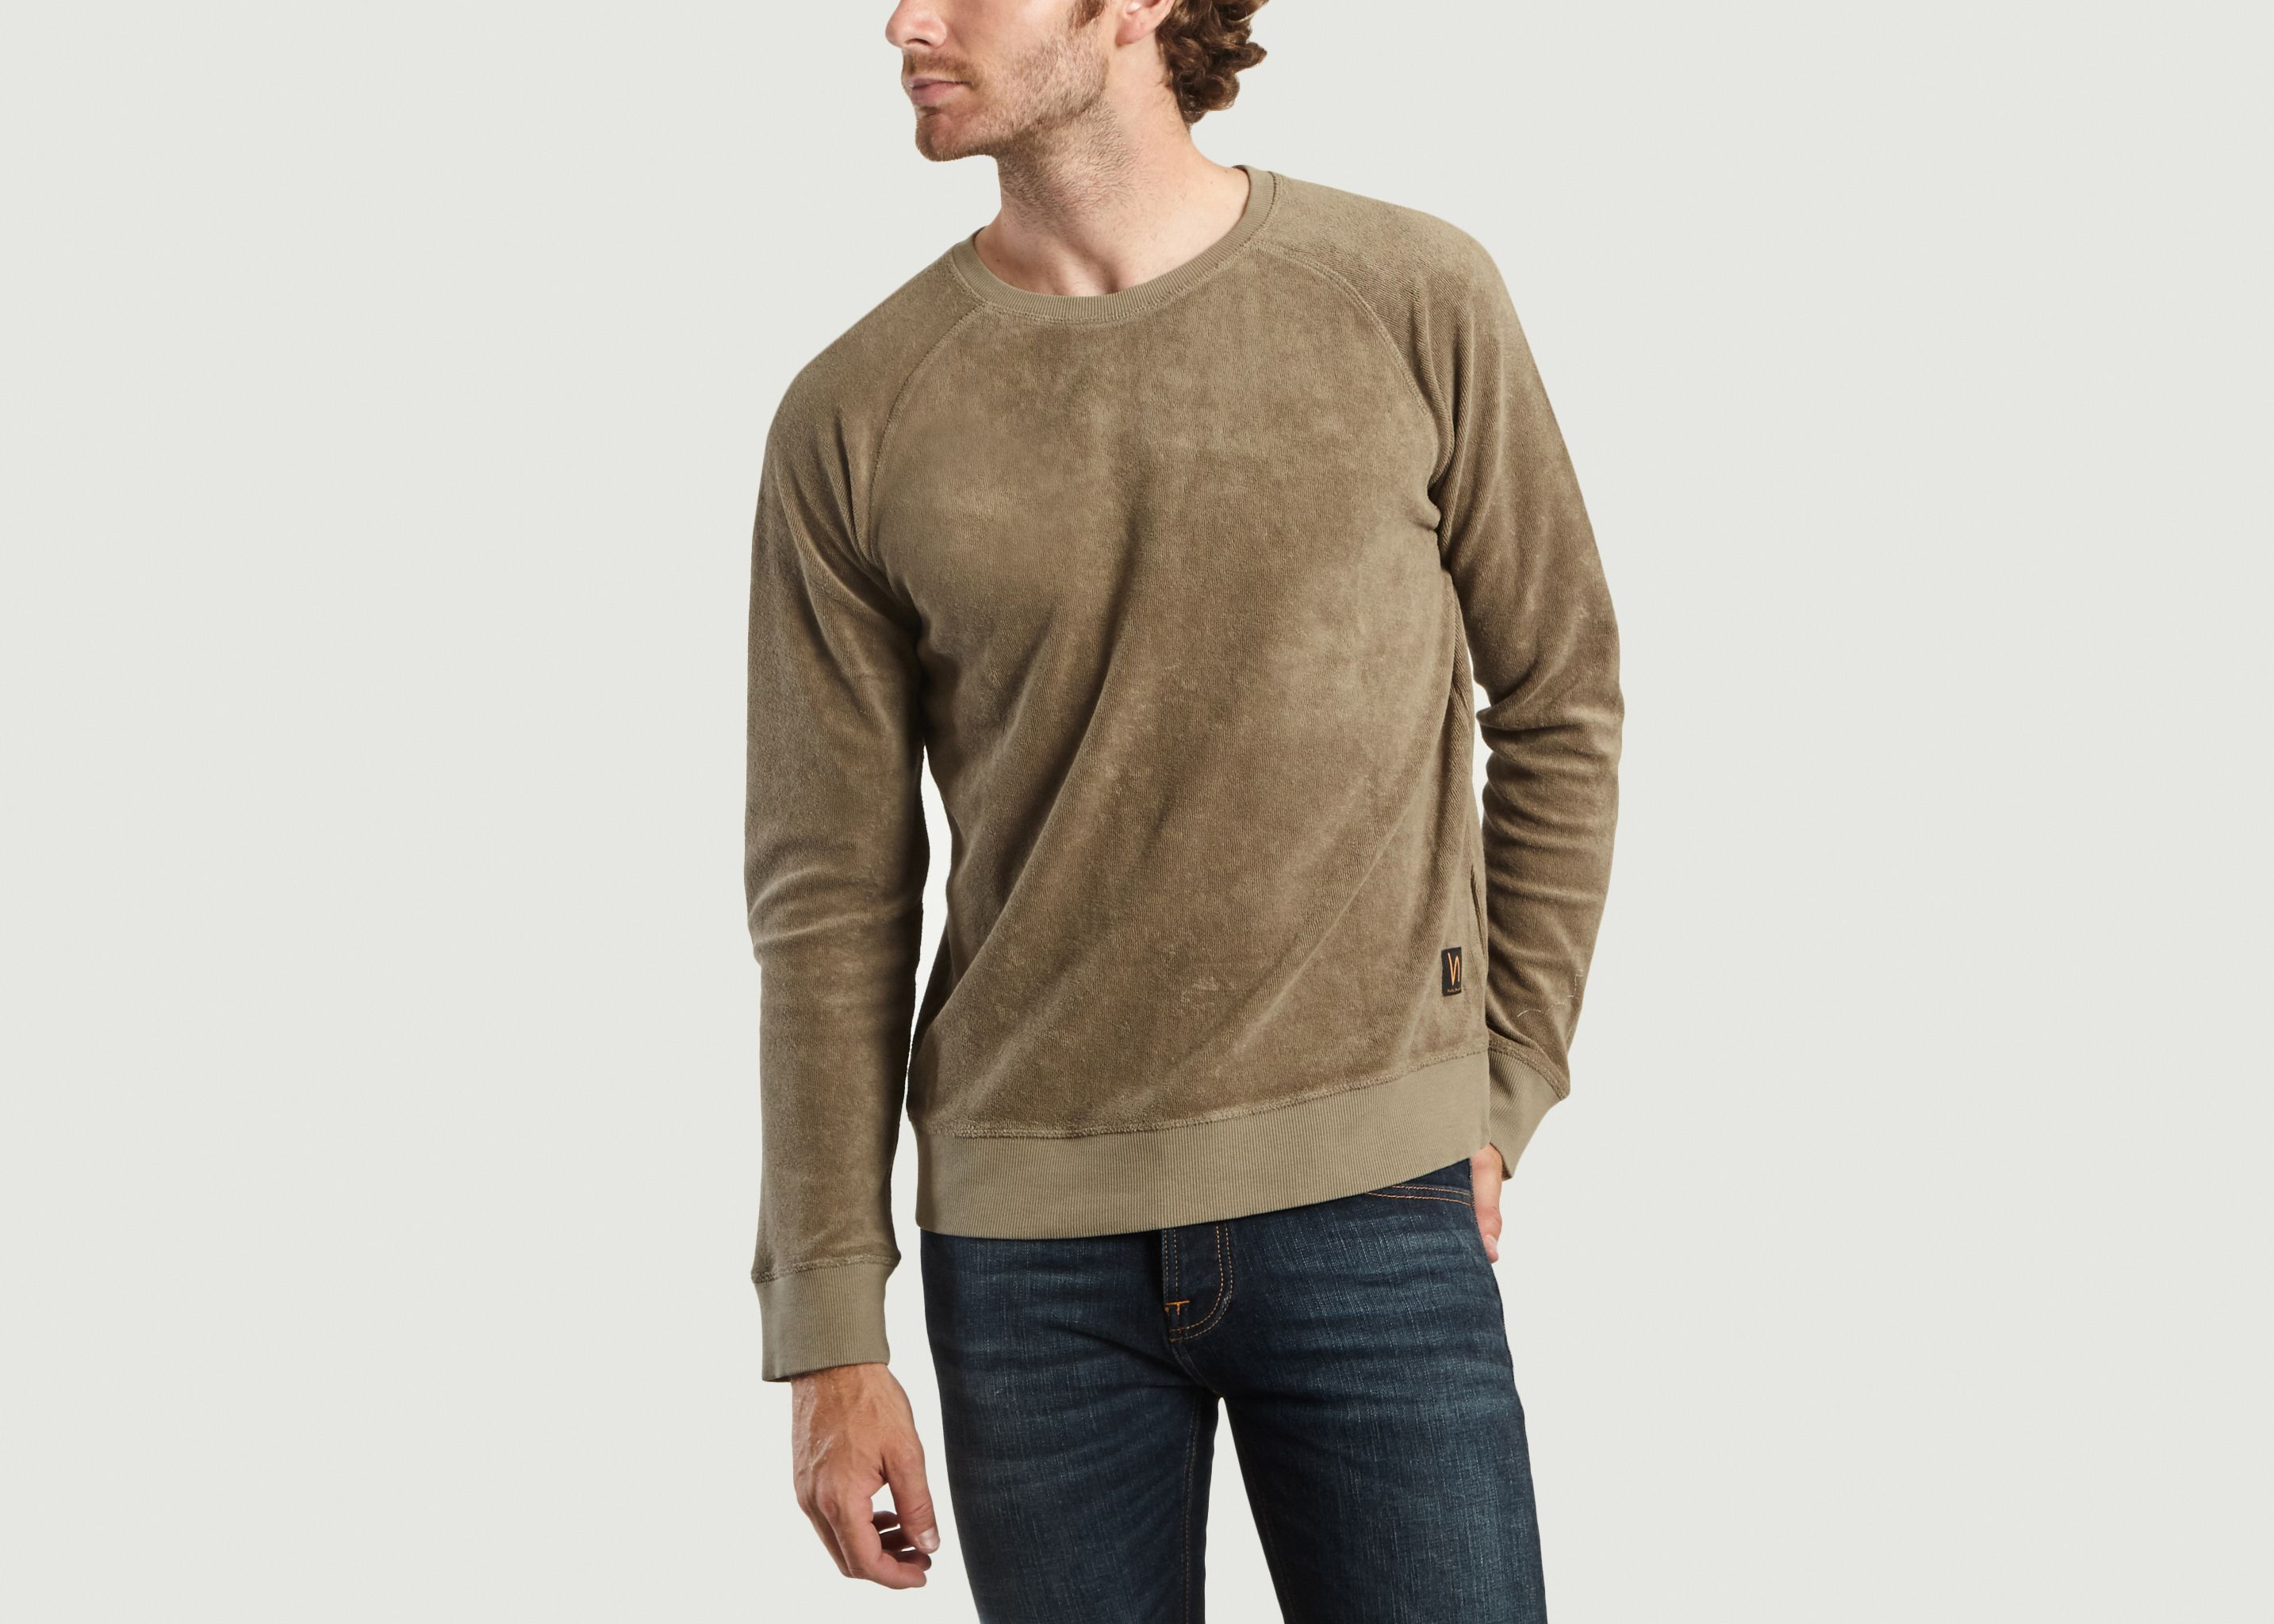 80d33466ea Samuel Terry Sweatshirt Turtle Dove Nudie Jeans